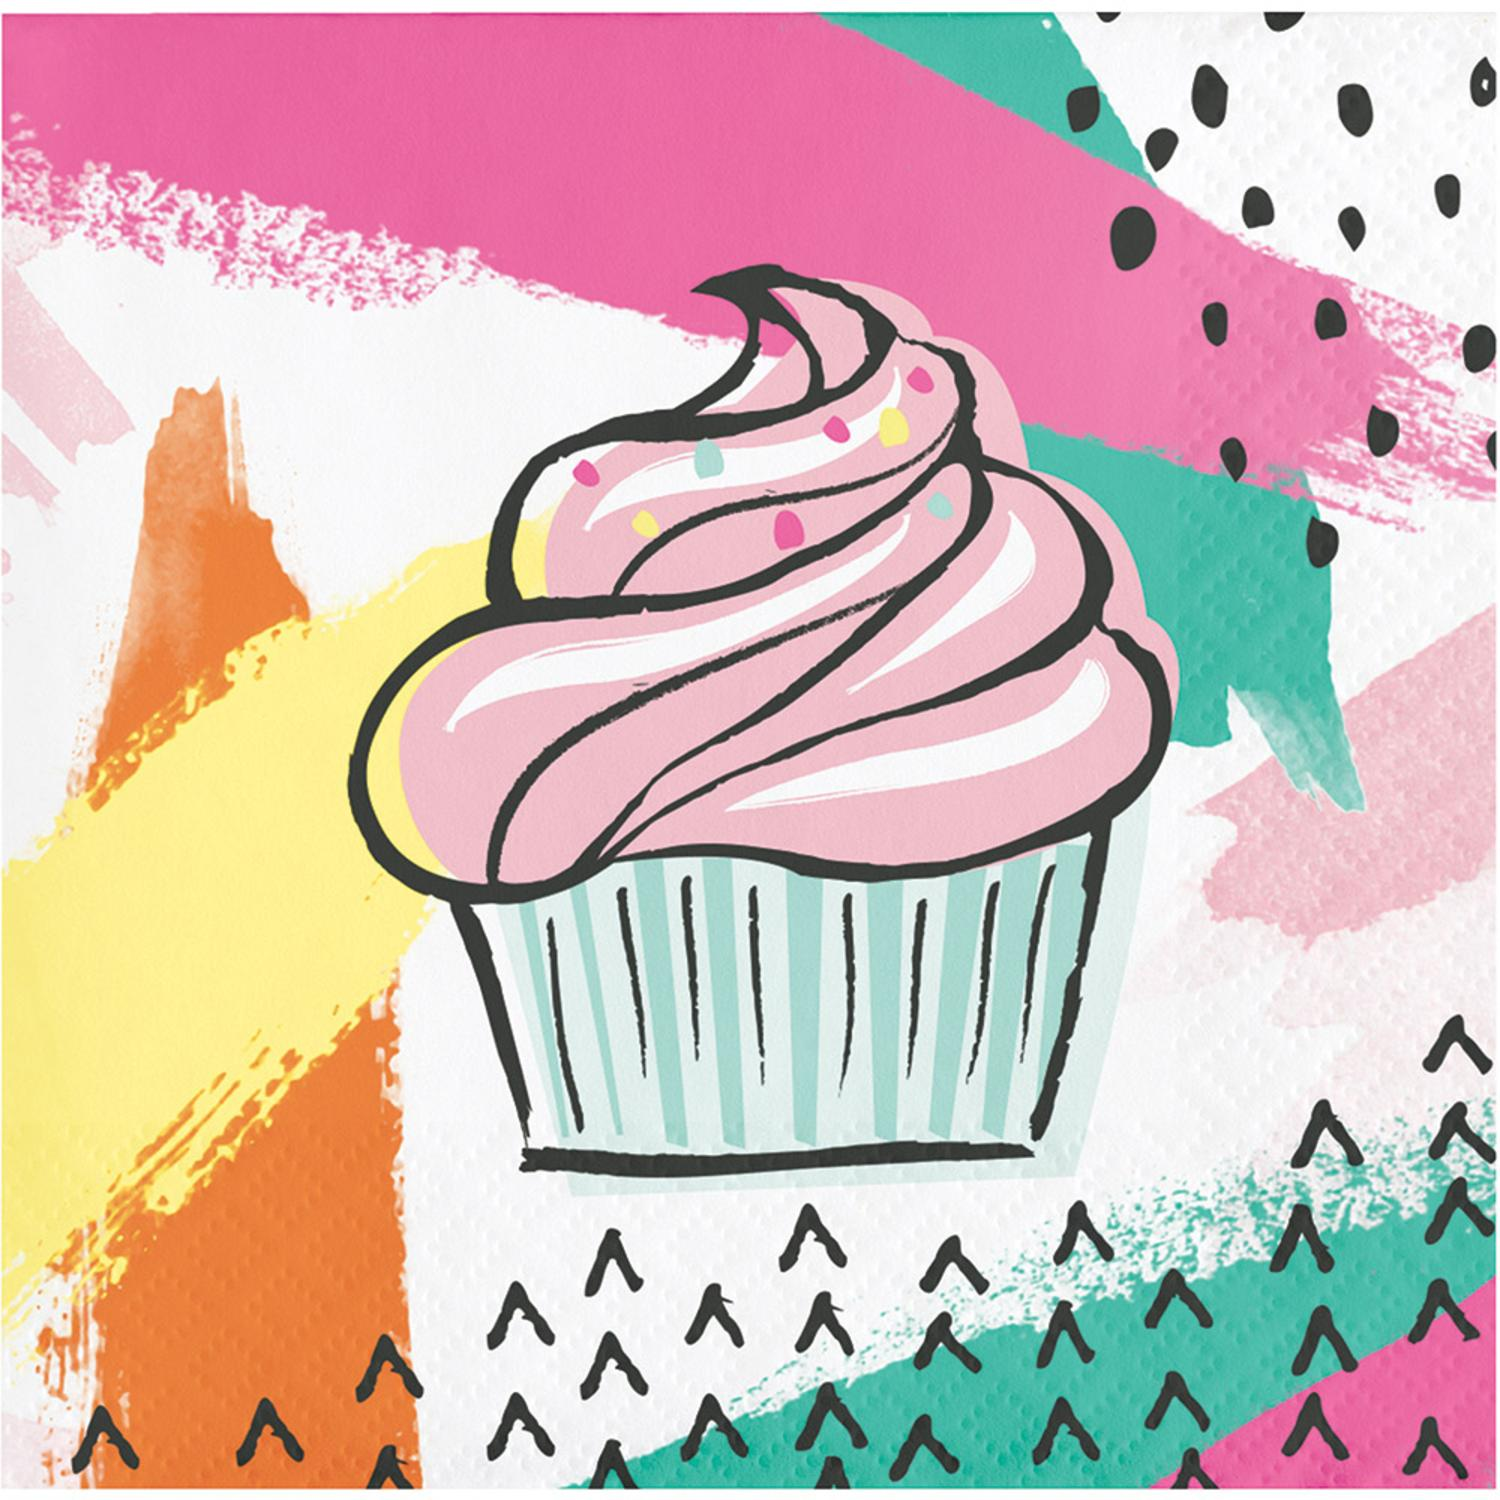 Pack of 192 Multicolored Chic Cupcake Printed Disposable Party Beverage Napkins 5""